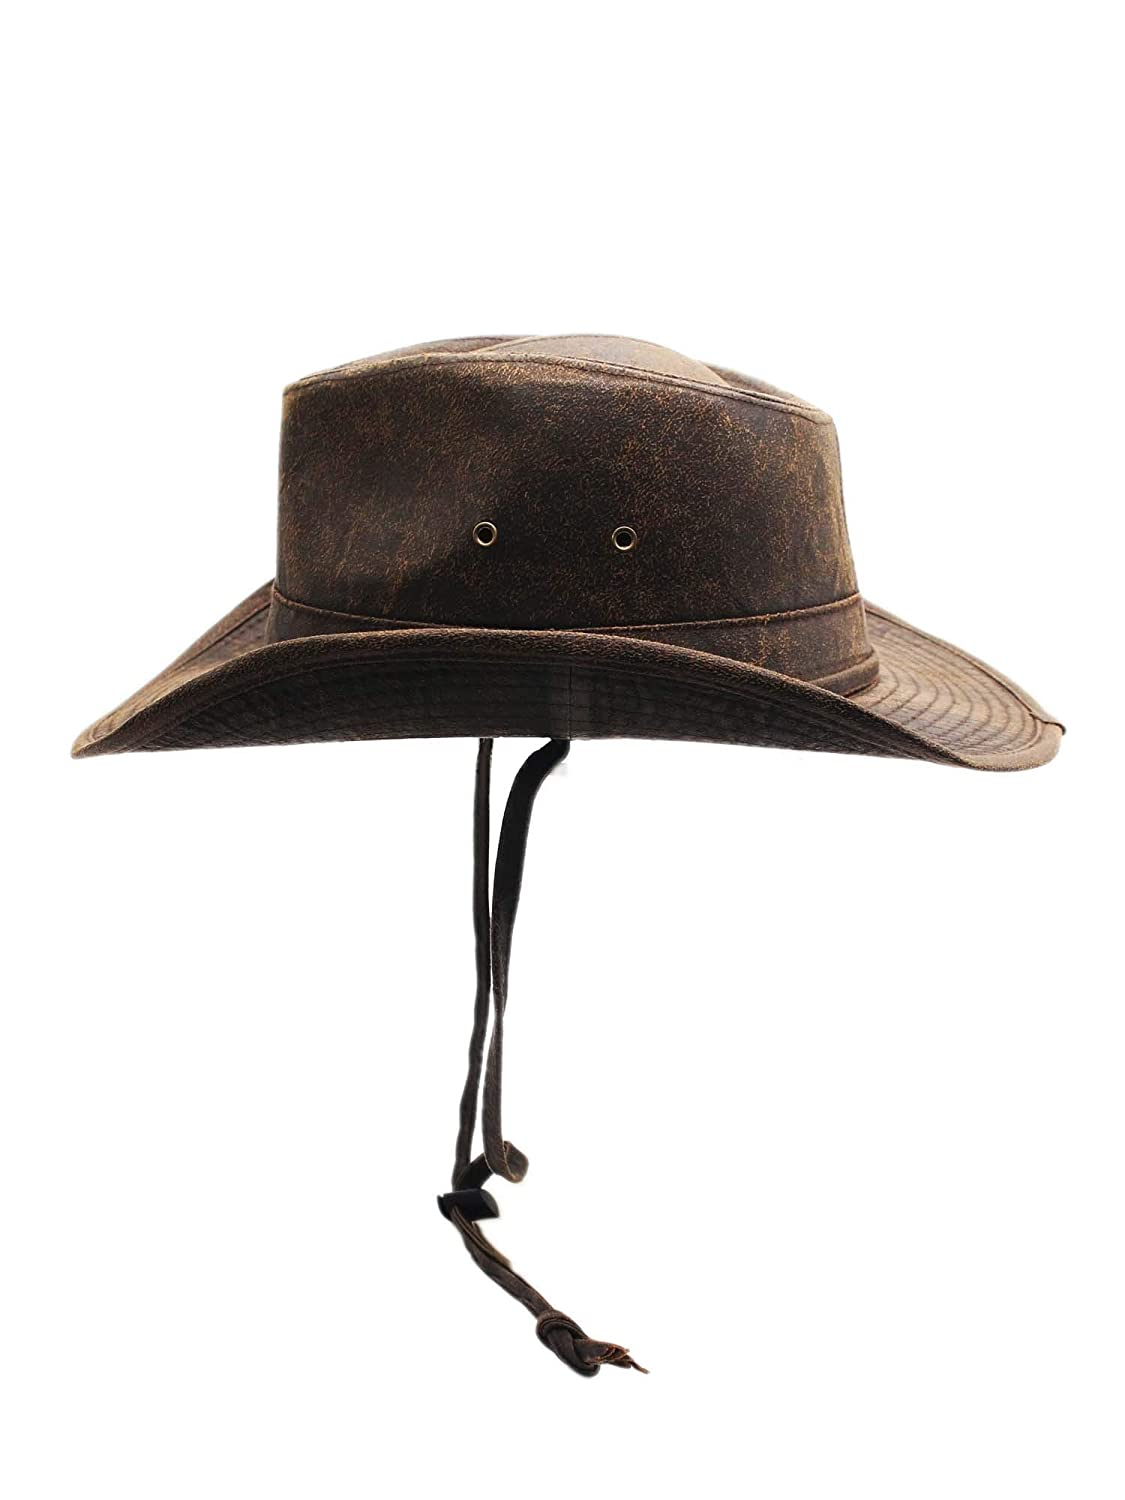 Silver Canyon Boot and Clothing Company Esposto alle intemperie Outback Outdoor Cappello modellabile per Uomo